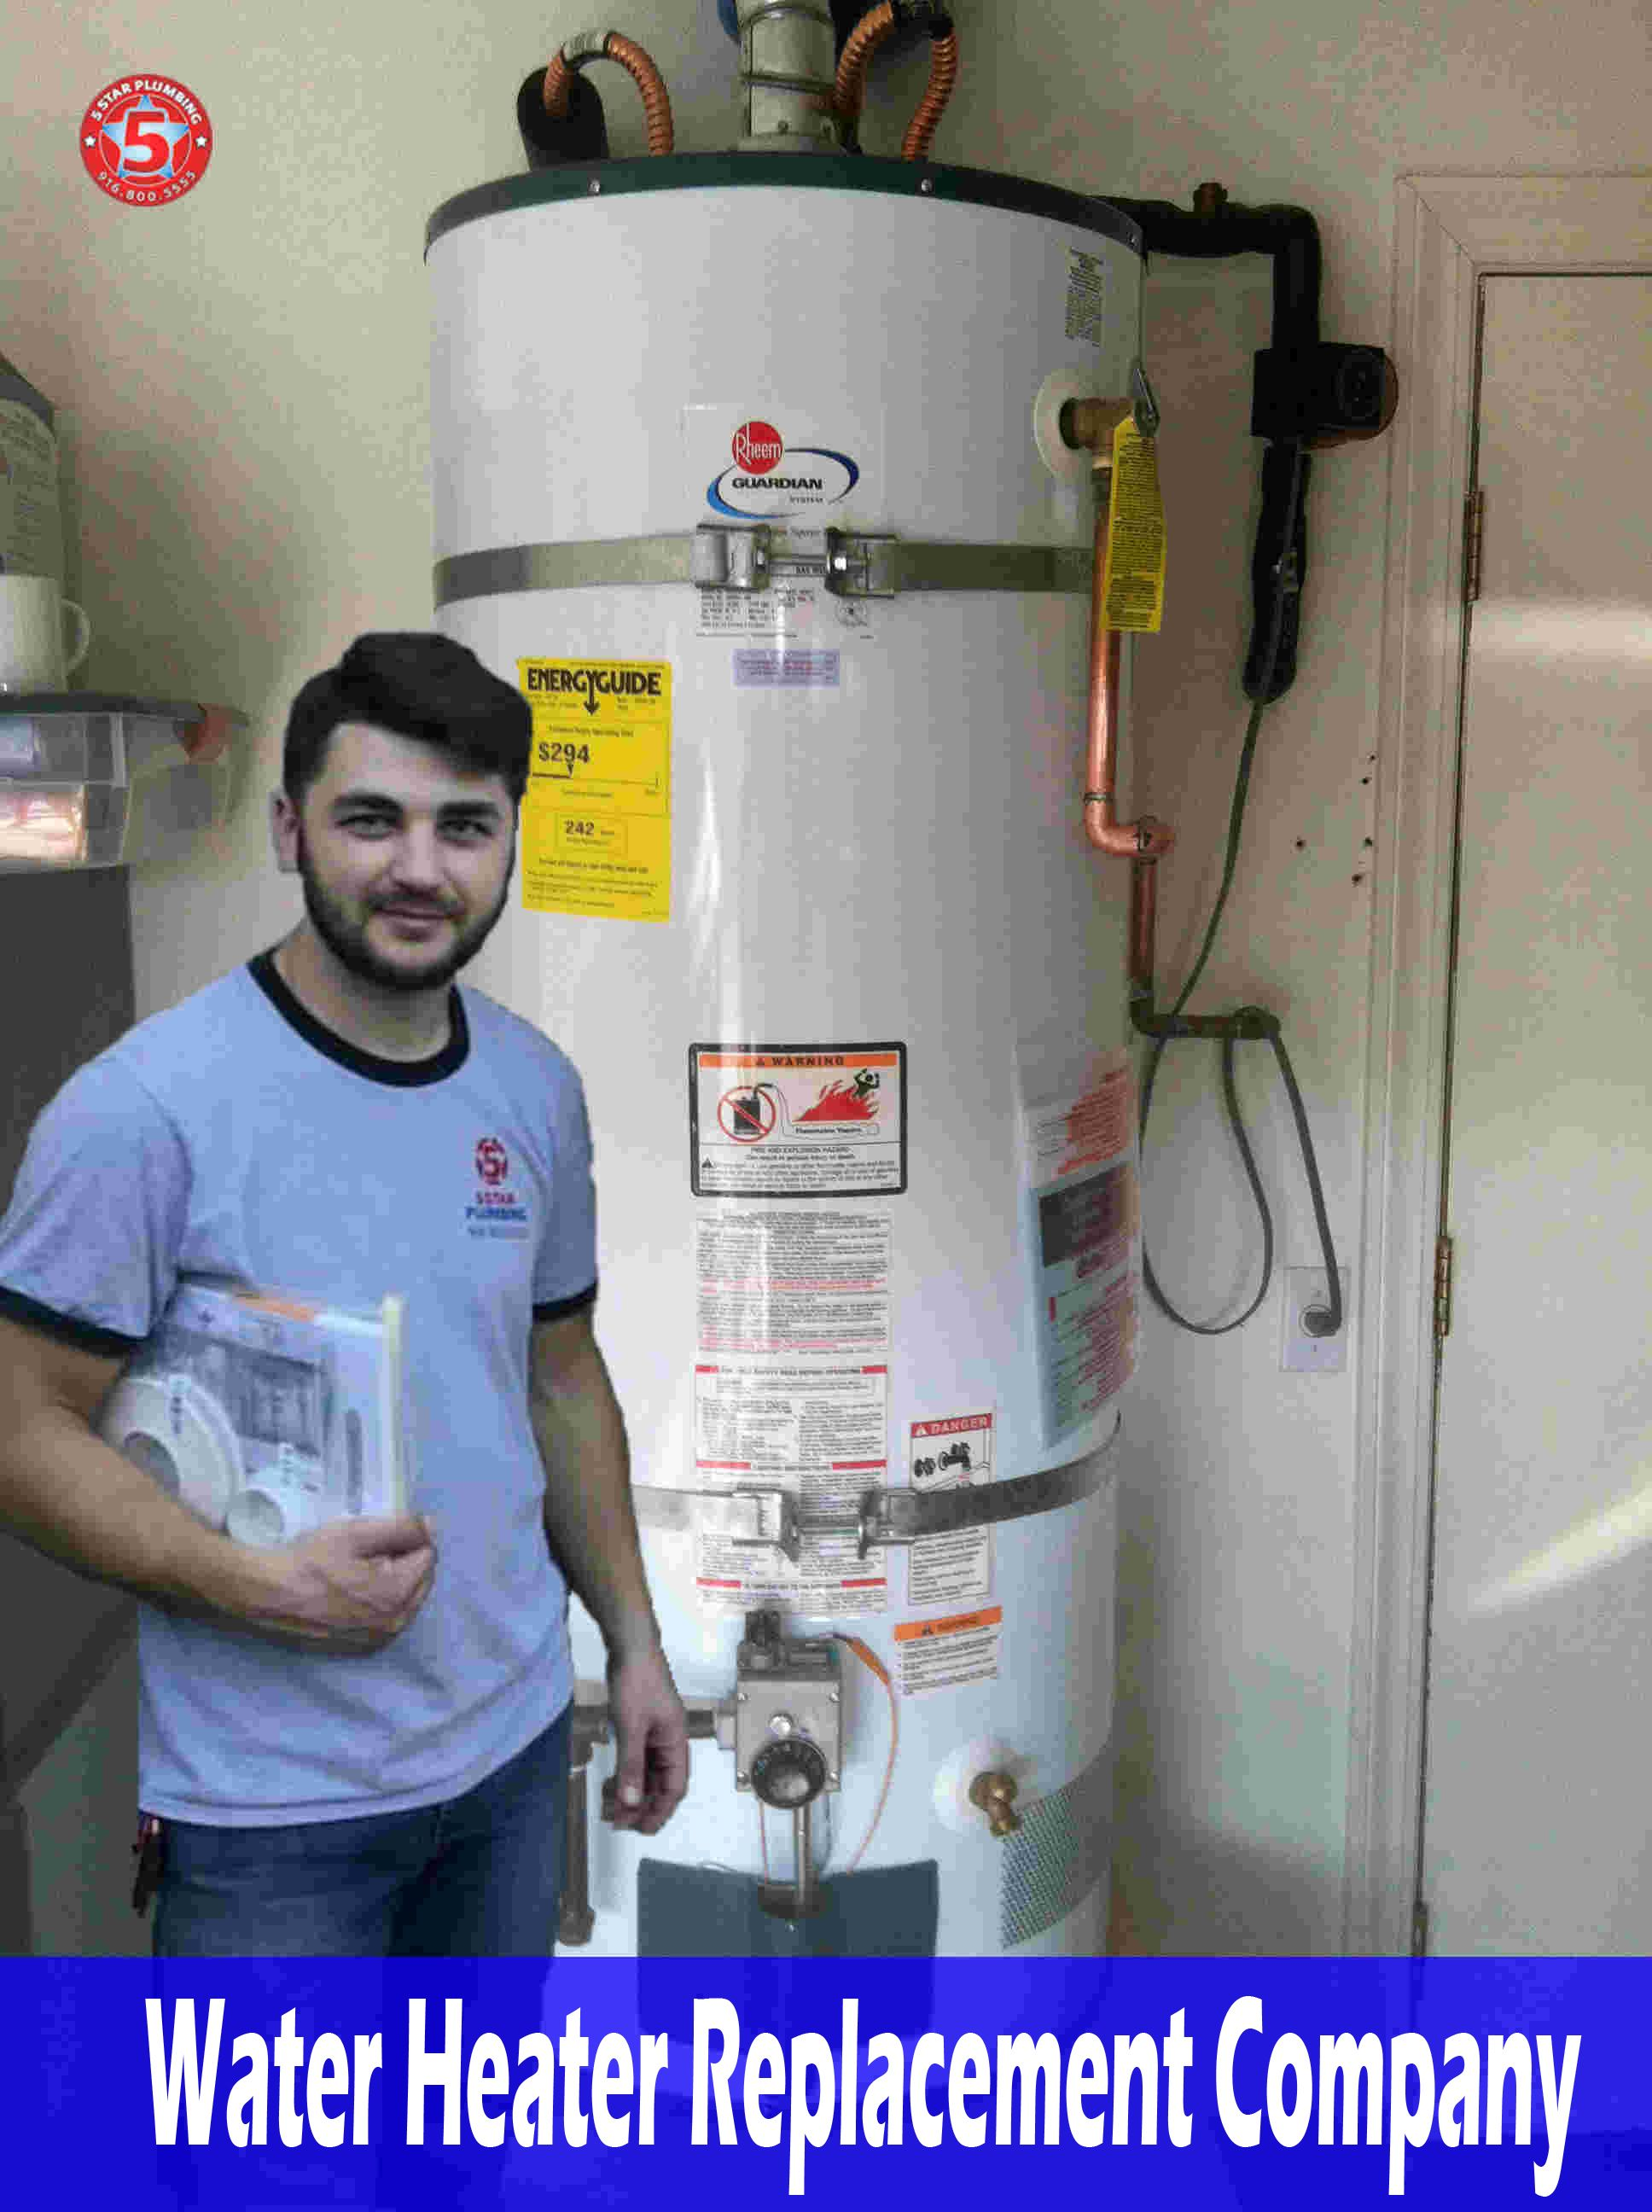 If you're replacing a water heater, you can replace it